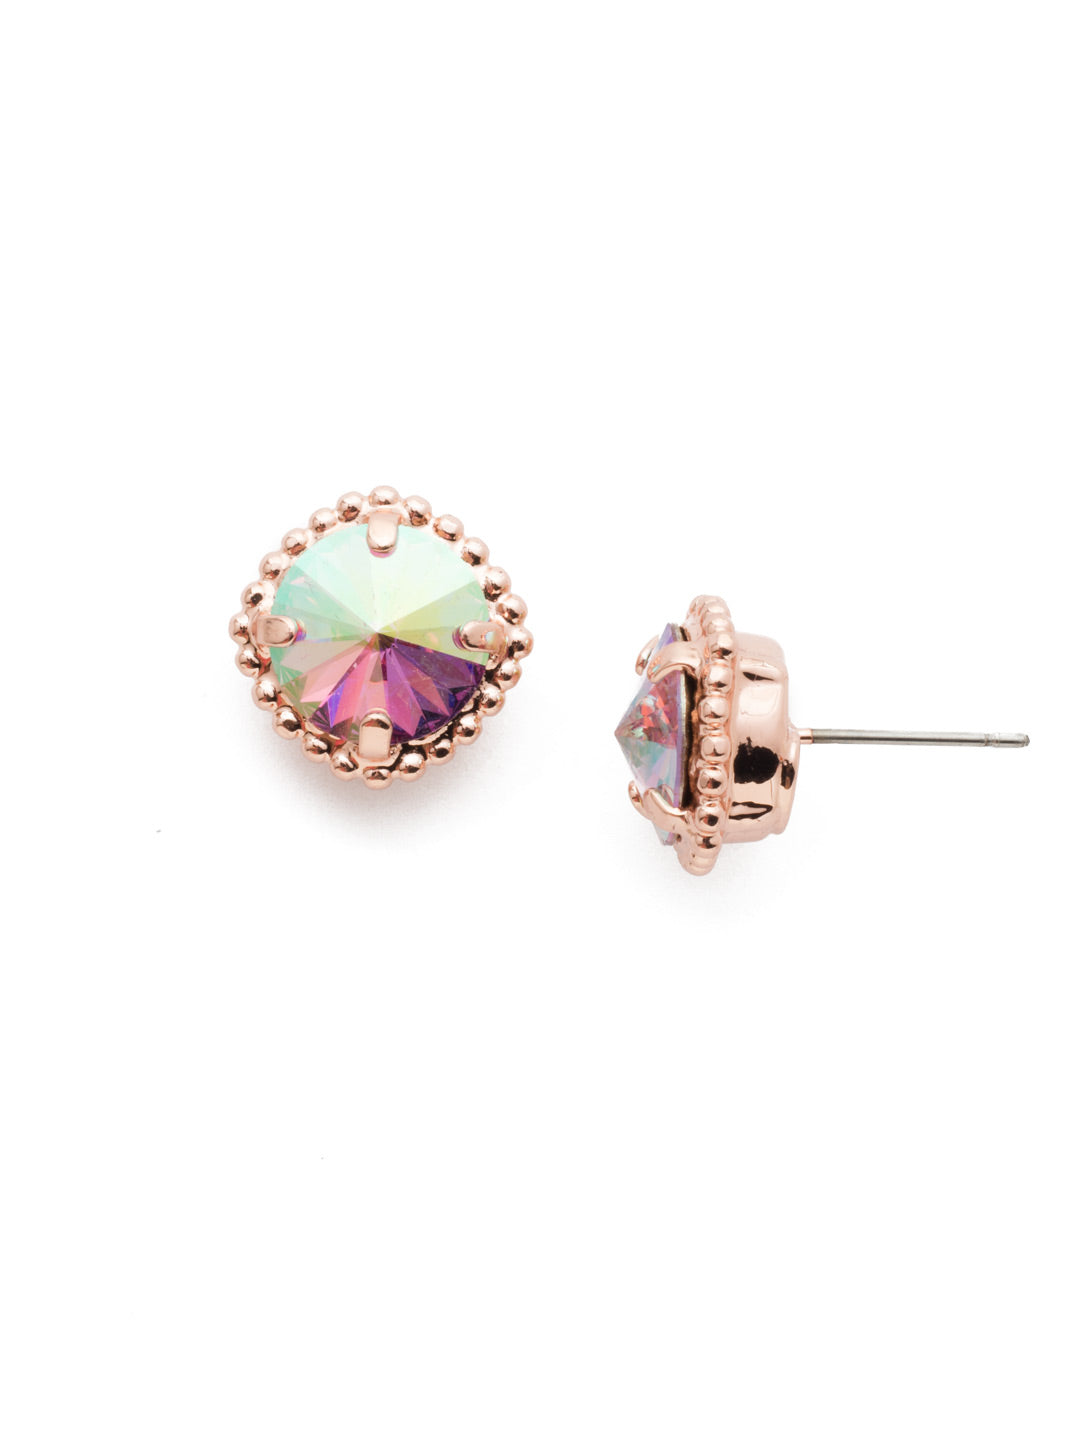 Soleil Stud Earrings - EEF94RGLVP